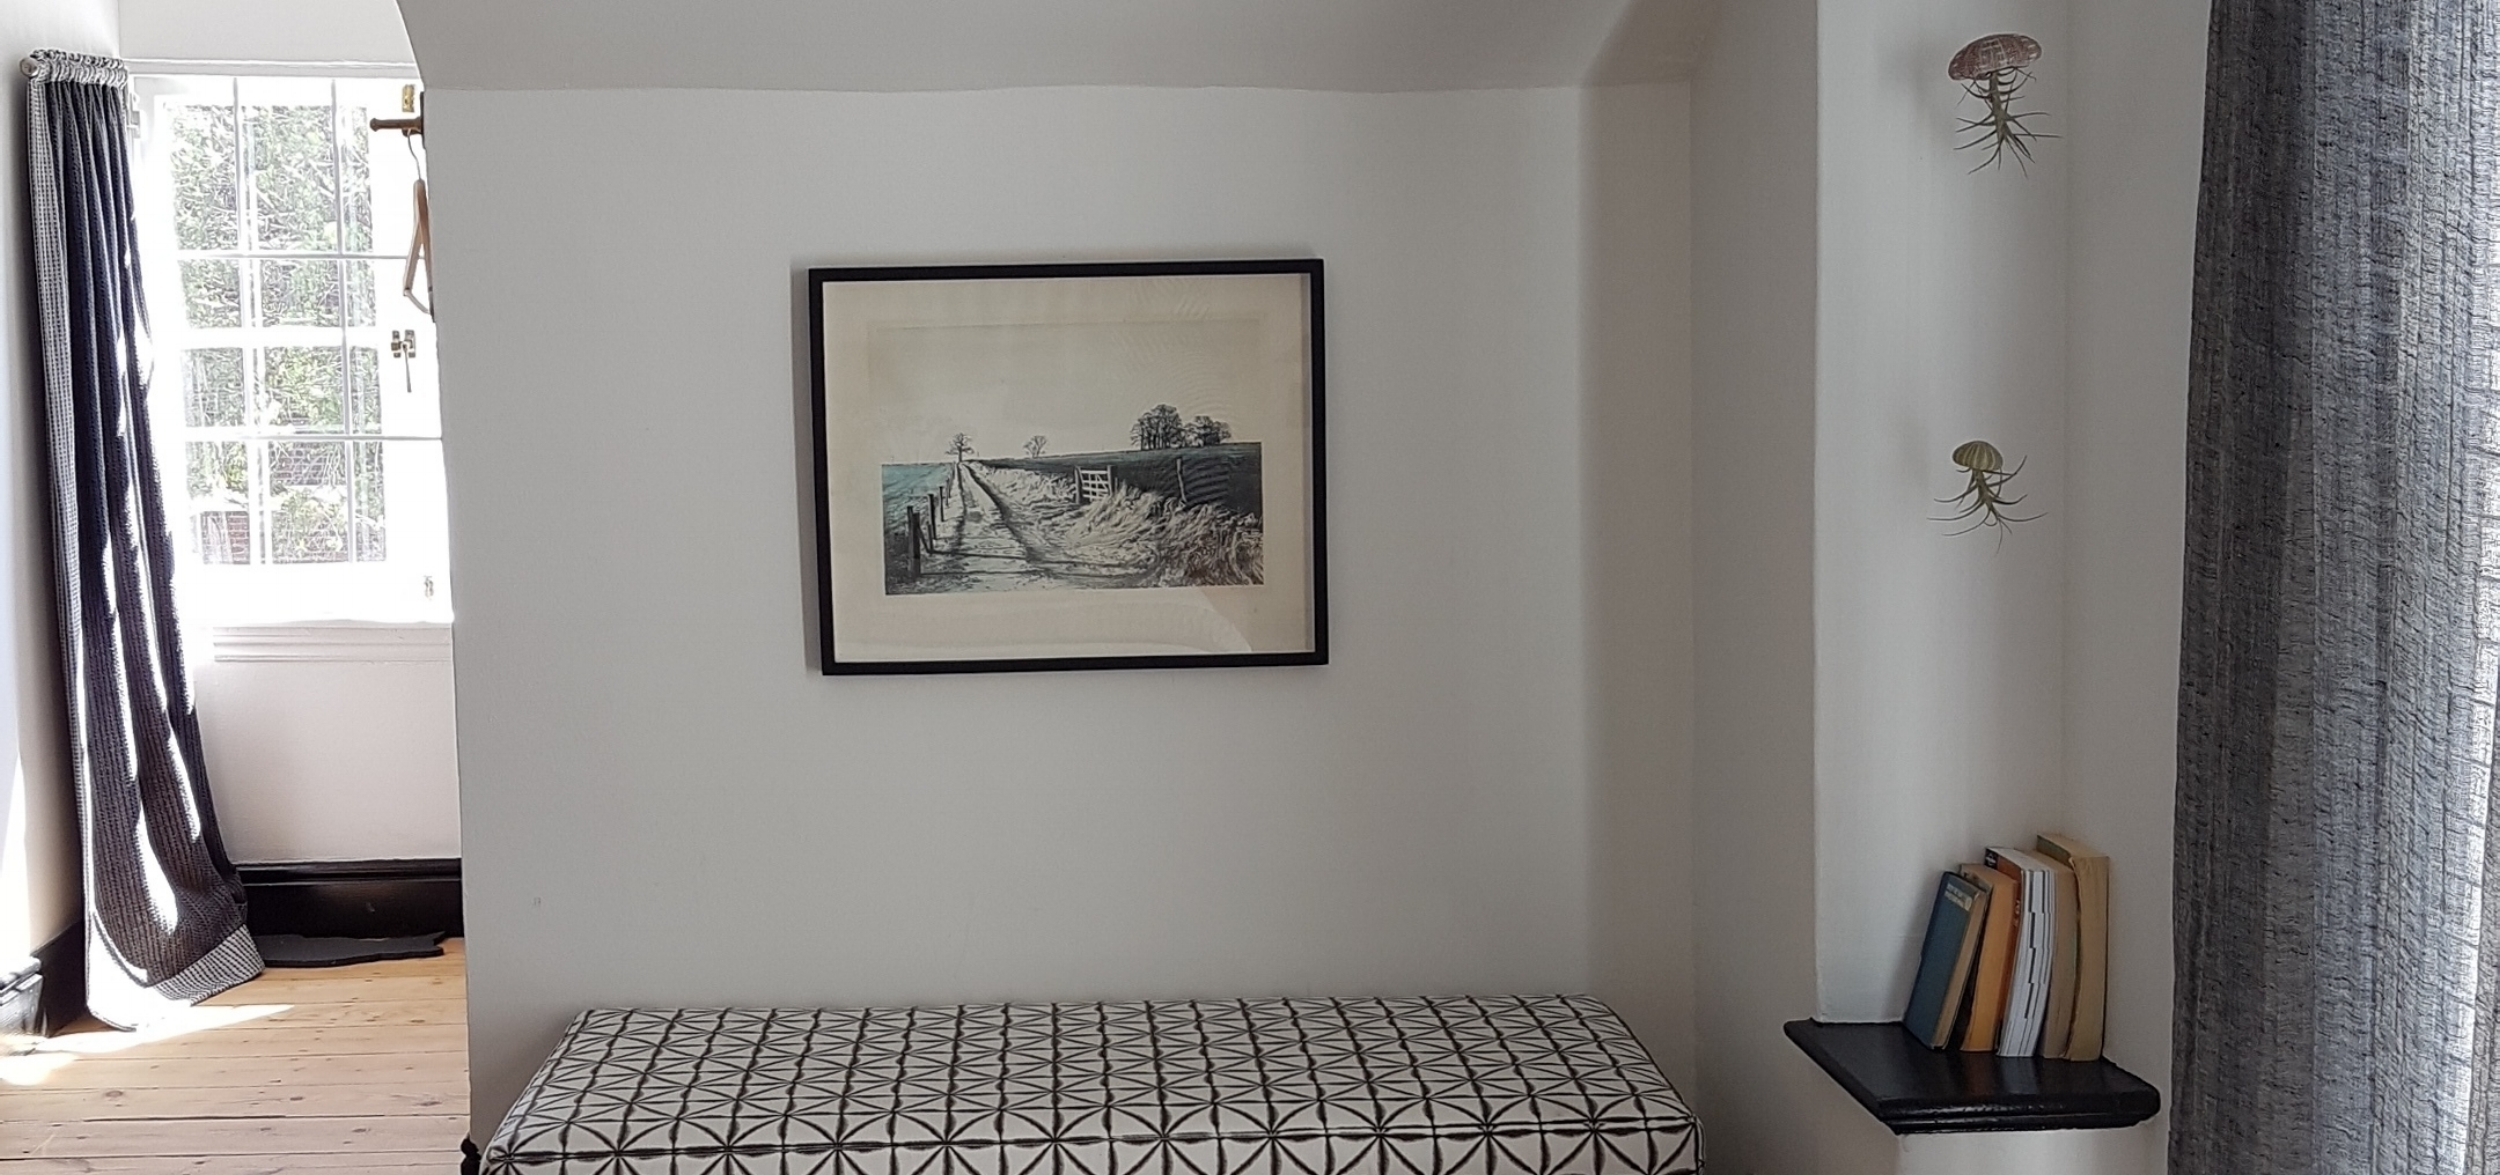 Gilmour Hill B&B - Upstairs suite7.jpg